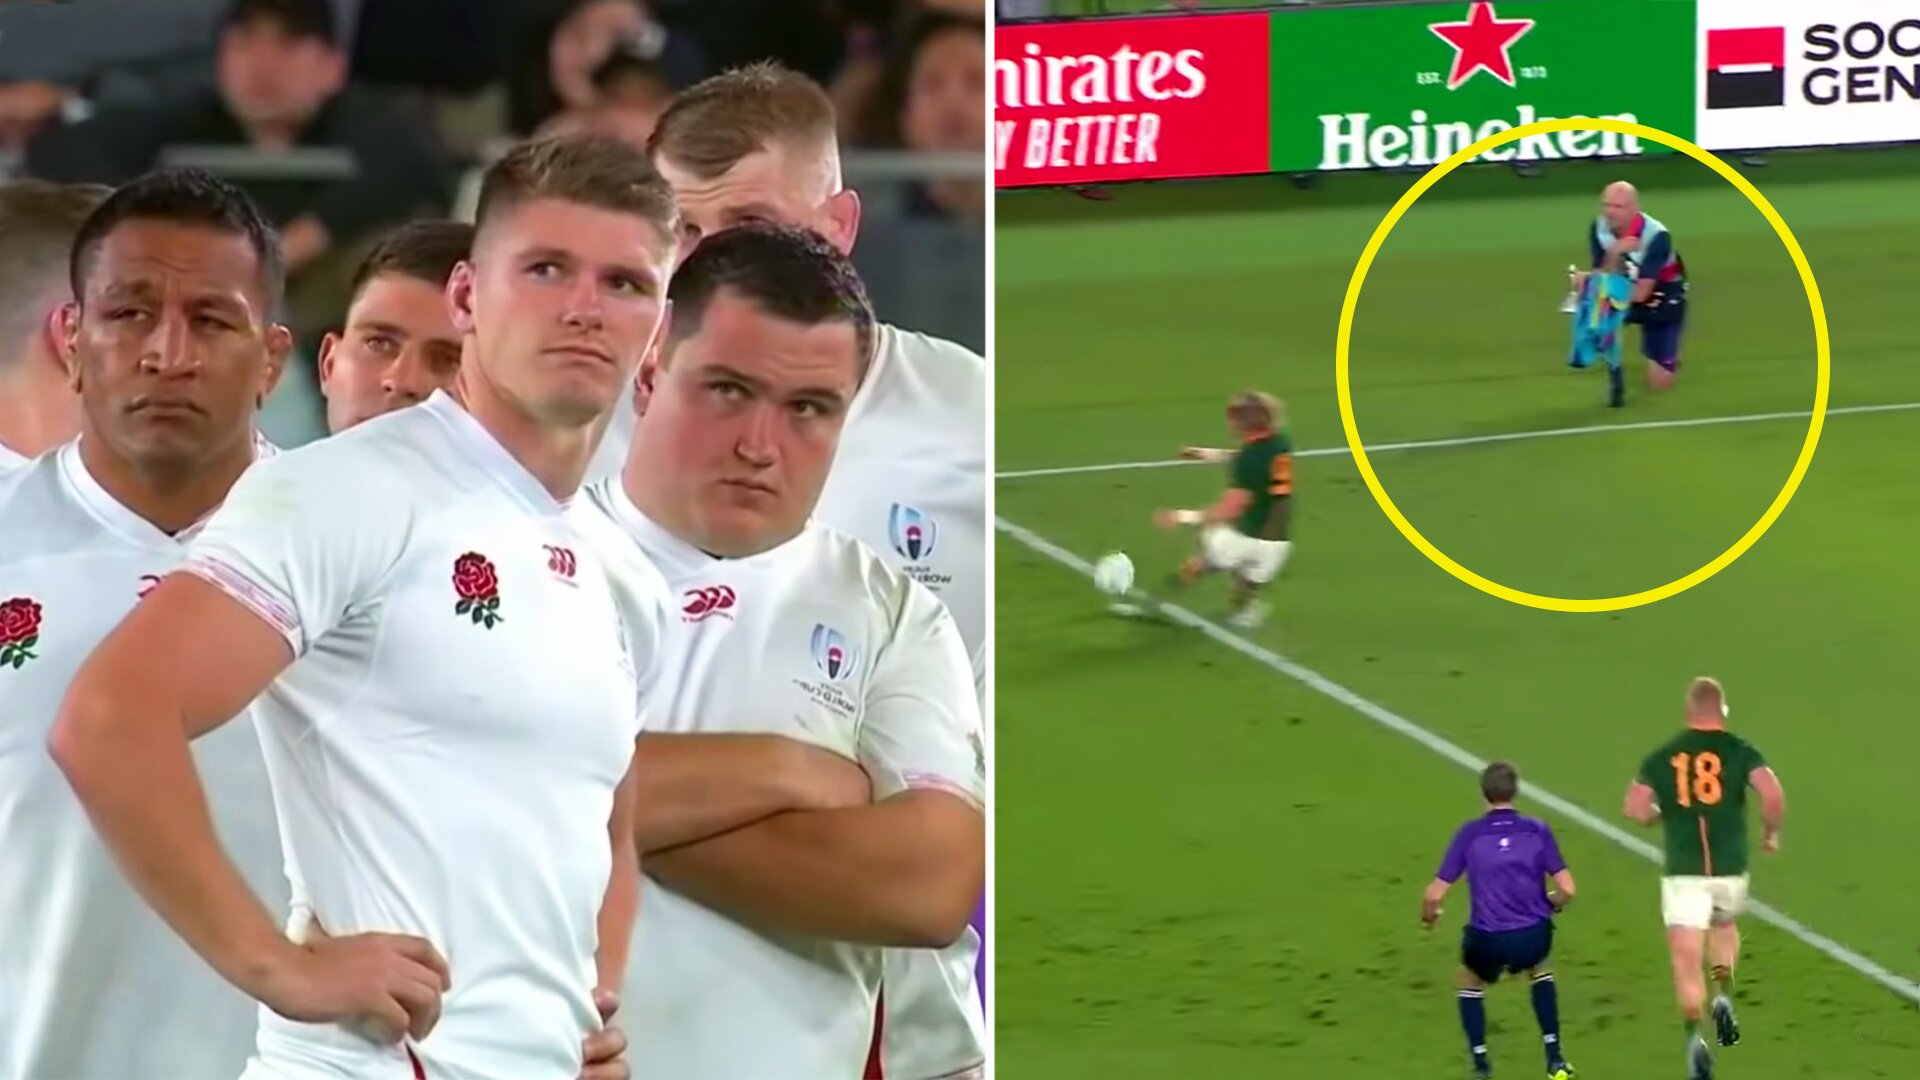 The shocking loophole that the Springboks exploited to win the World Cup final